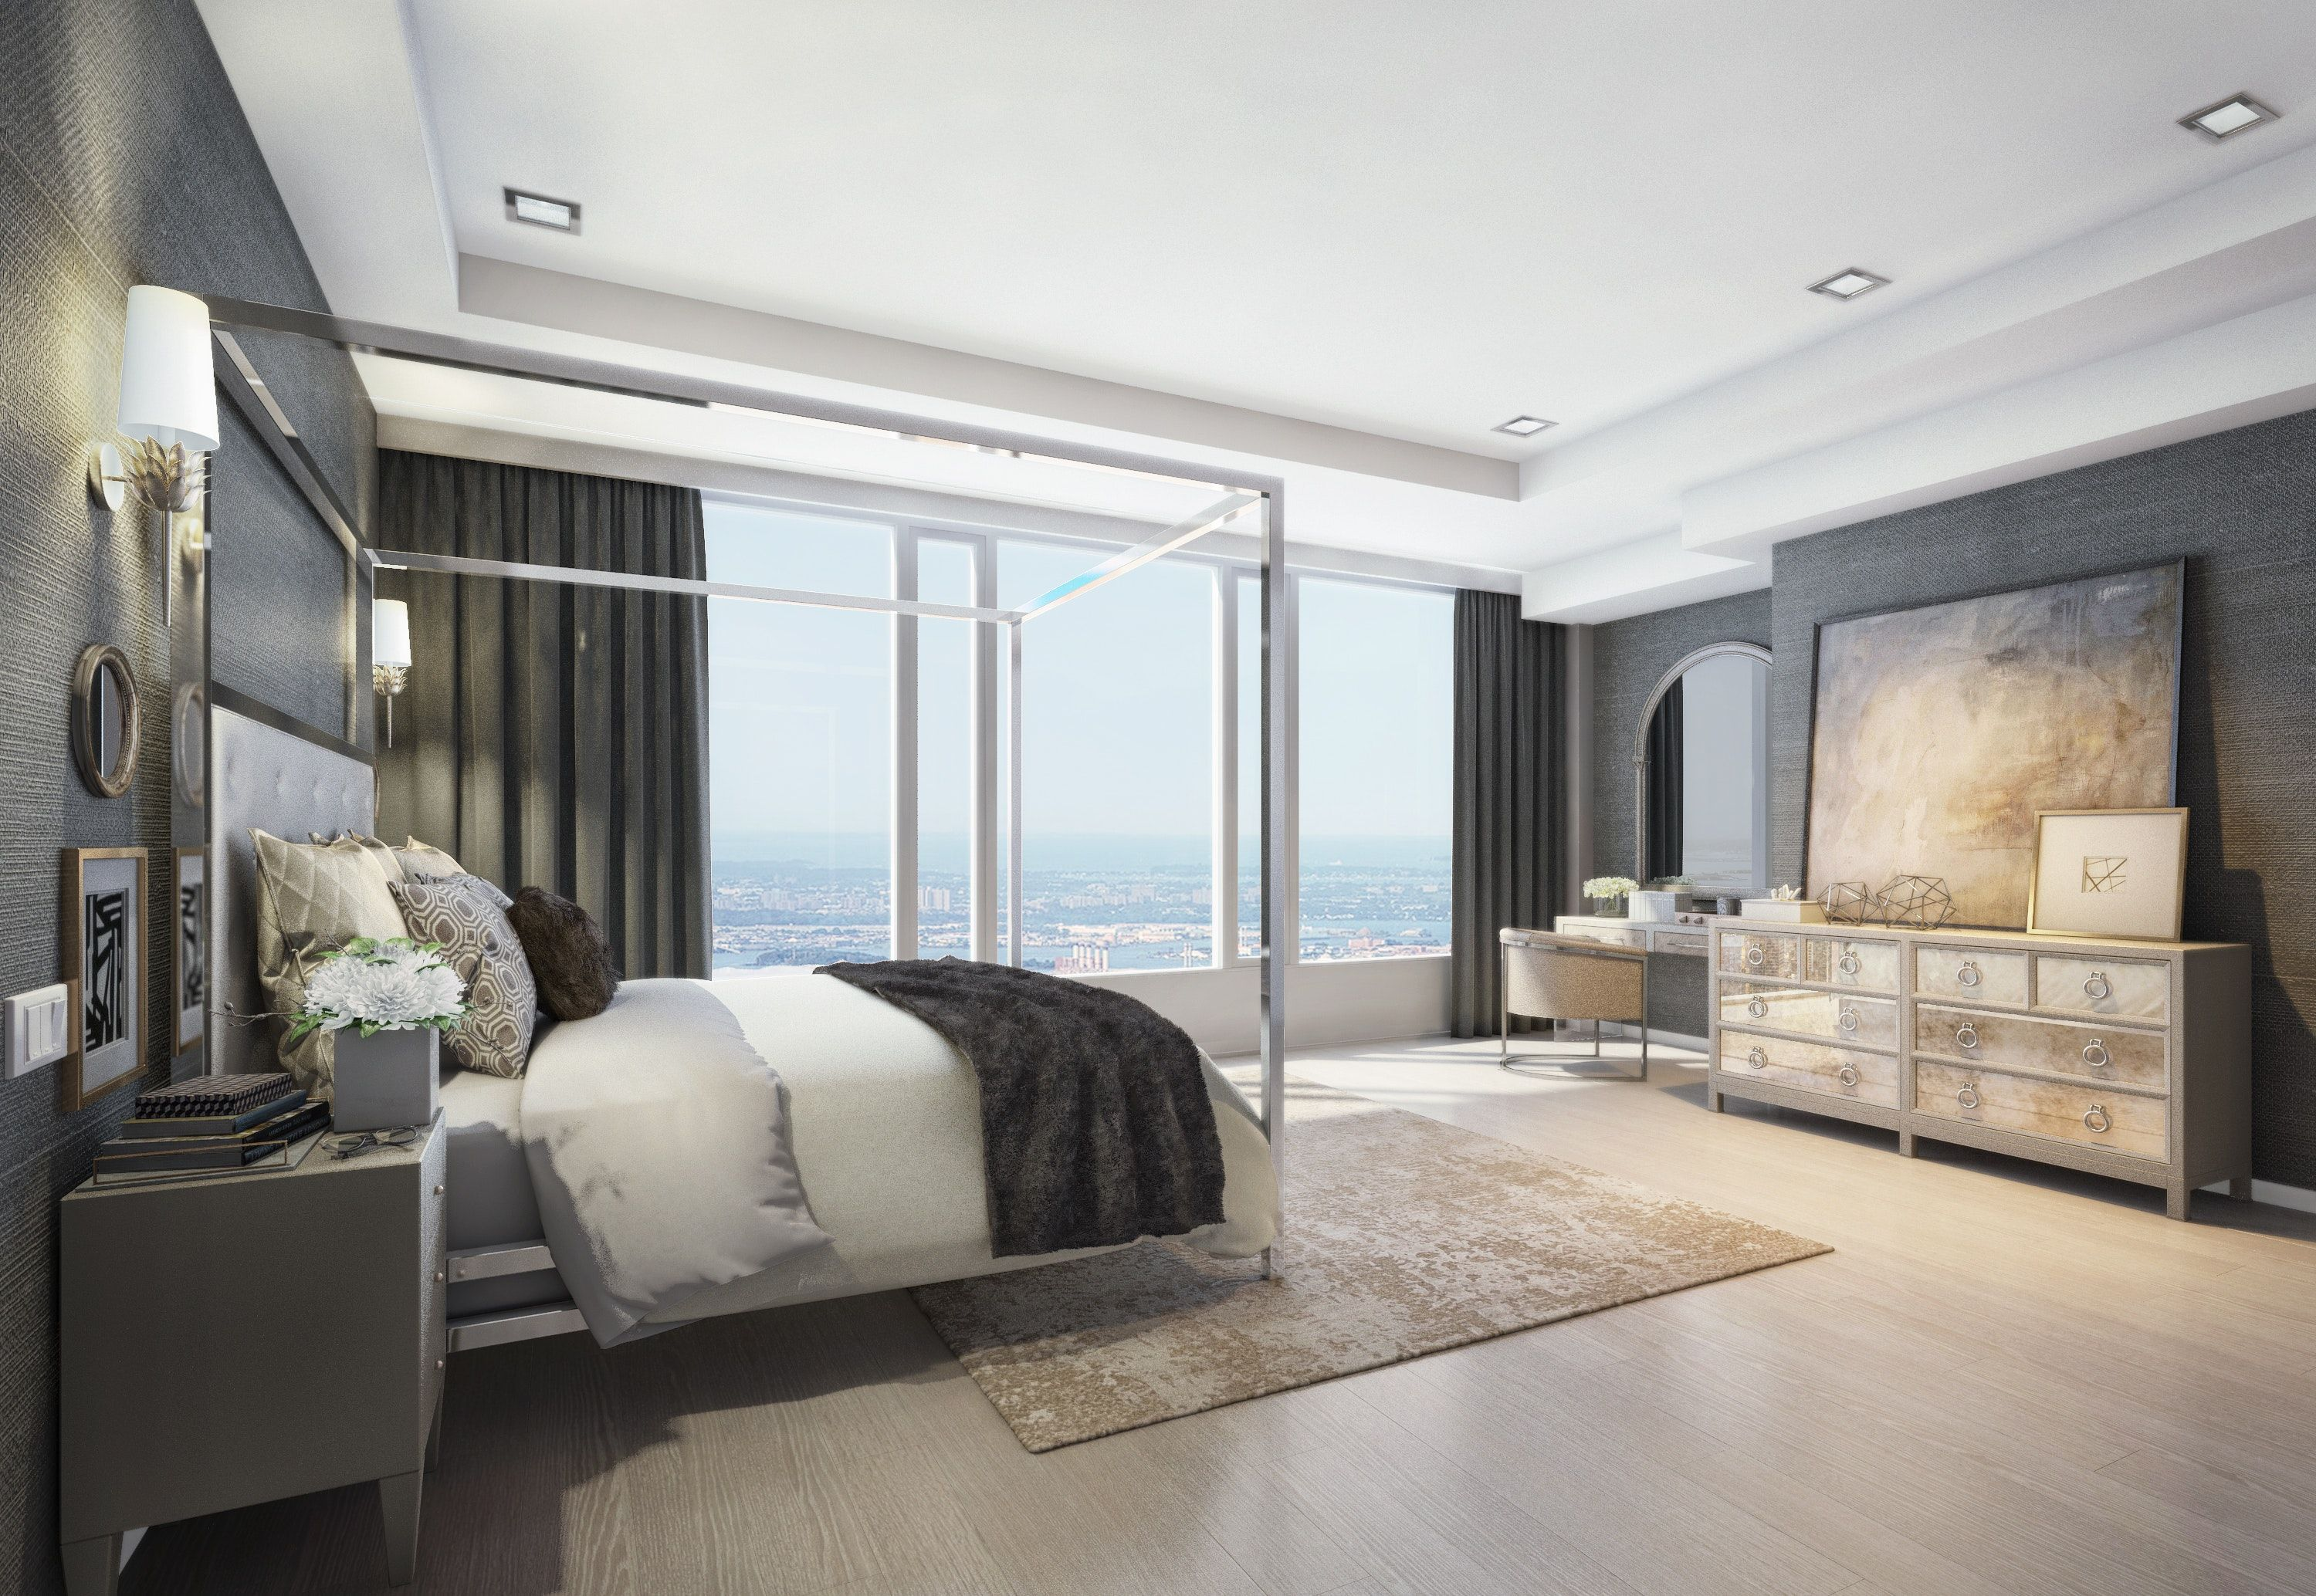 Master Bedroom  Upper West Side Penthouse  NYC by Kathy